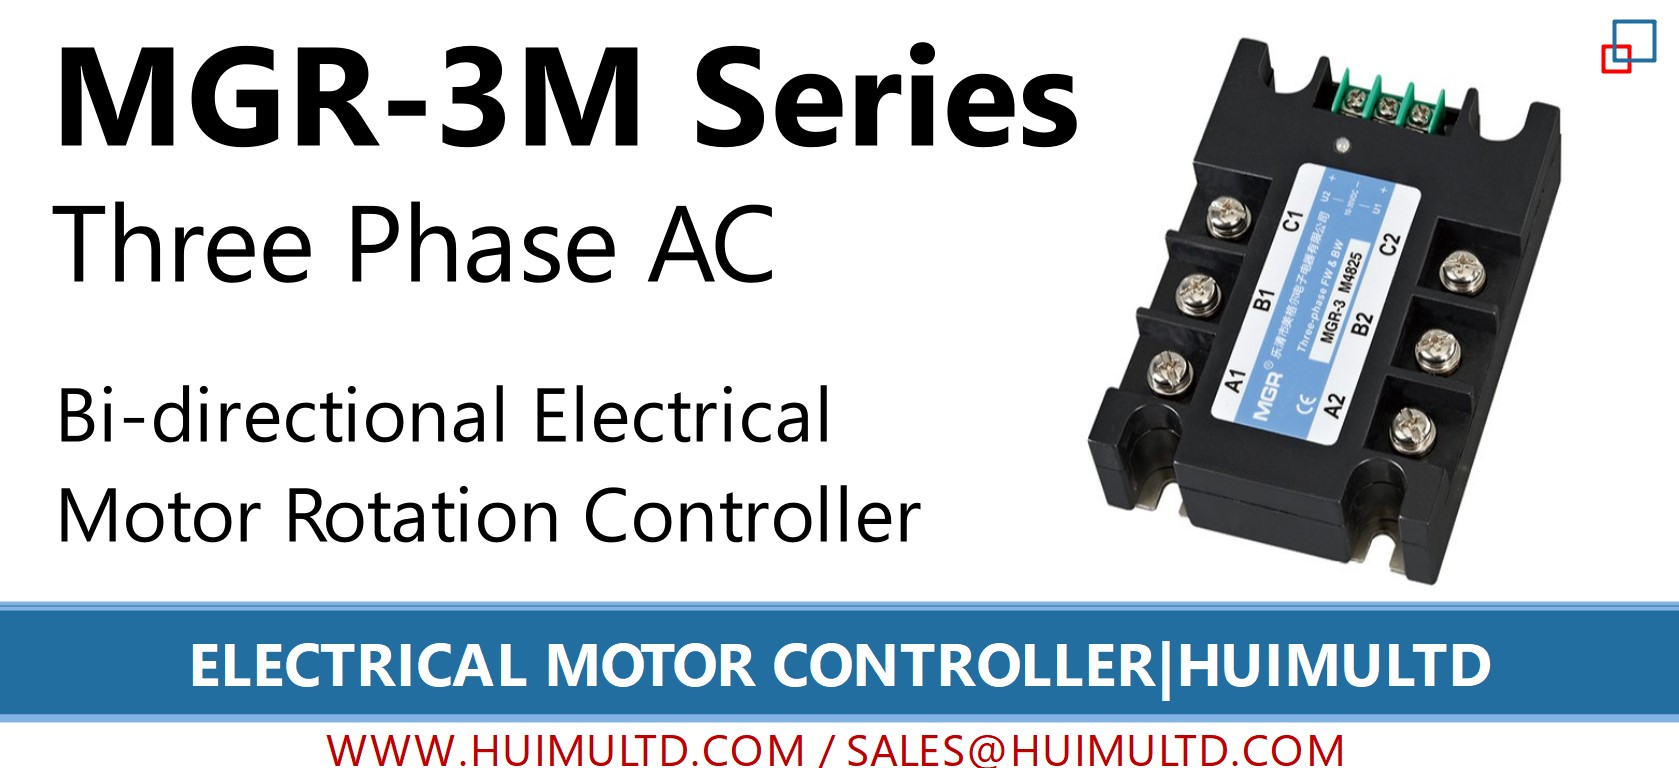 MGR-3M Series Electrical Motor Controller